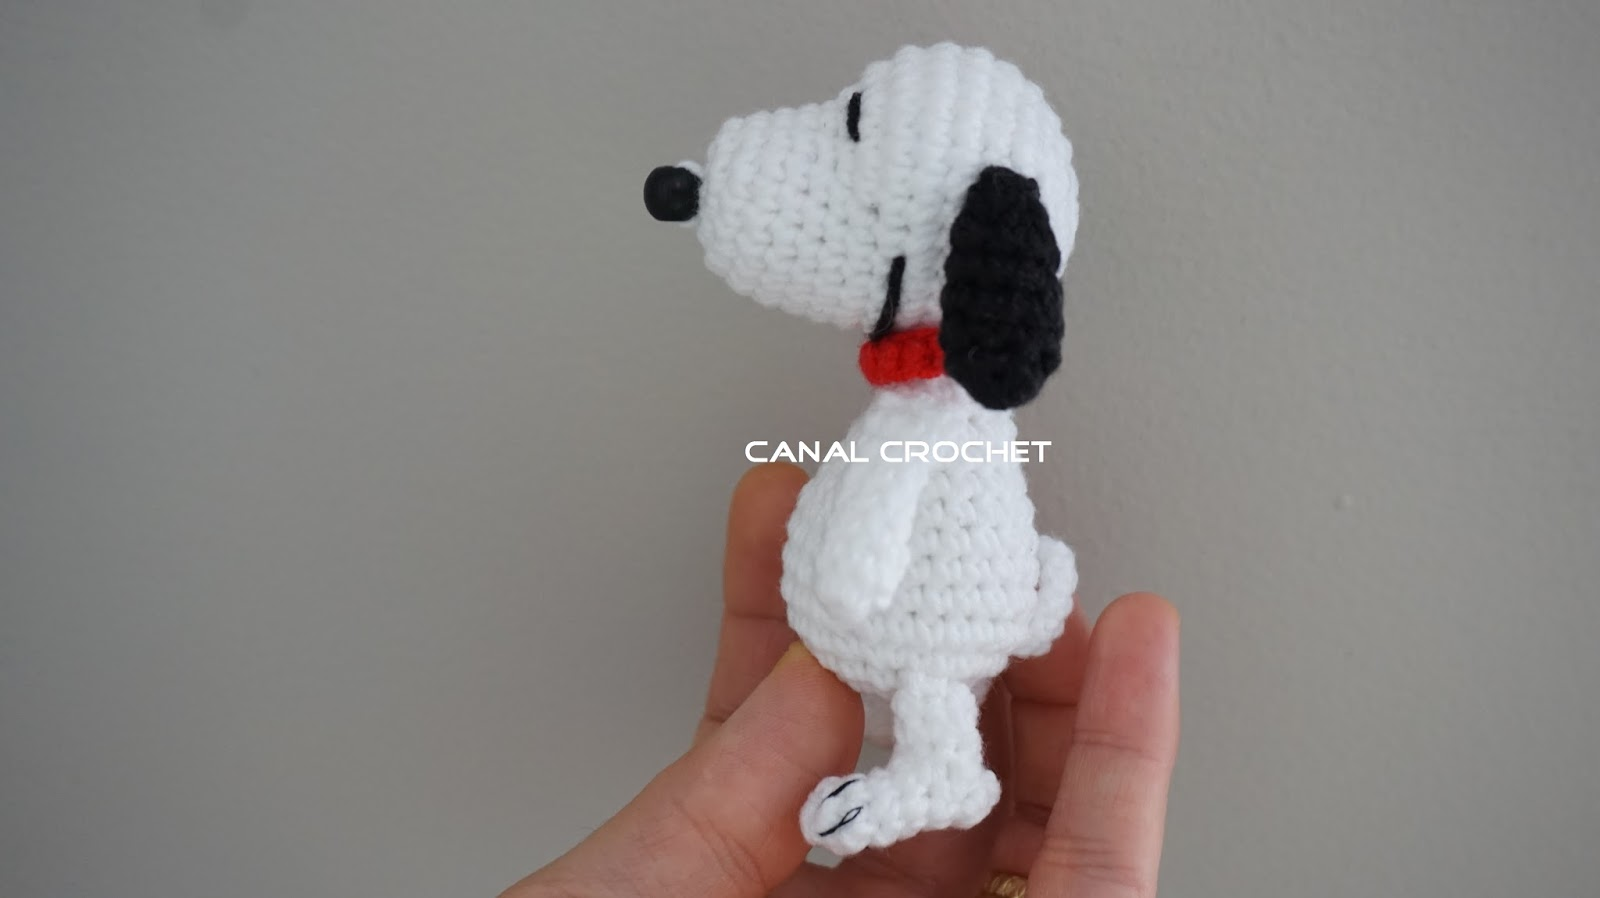 Amigurumi Patterns Snoopy : Canal crochet: snoopy amigurumi tutorial